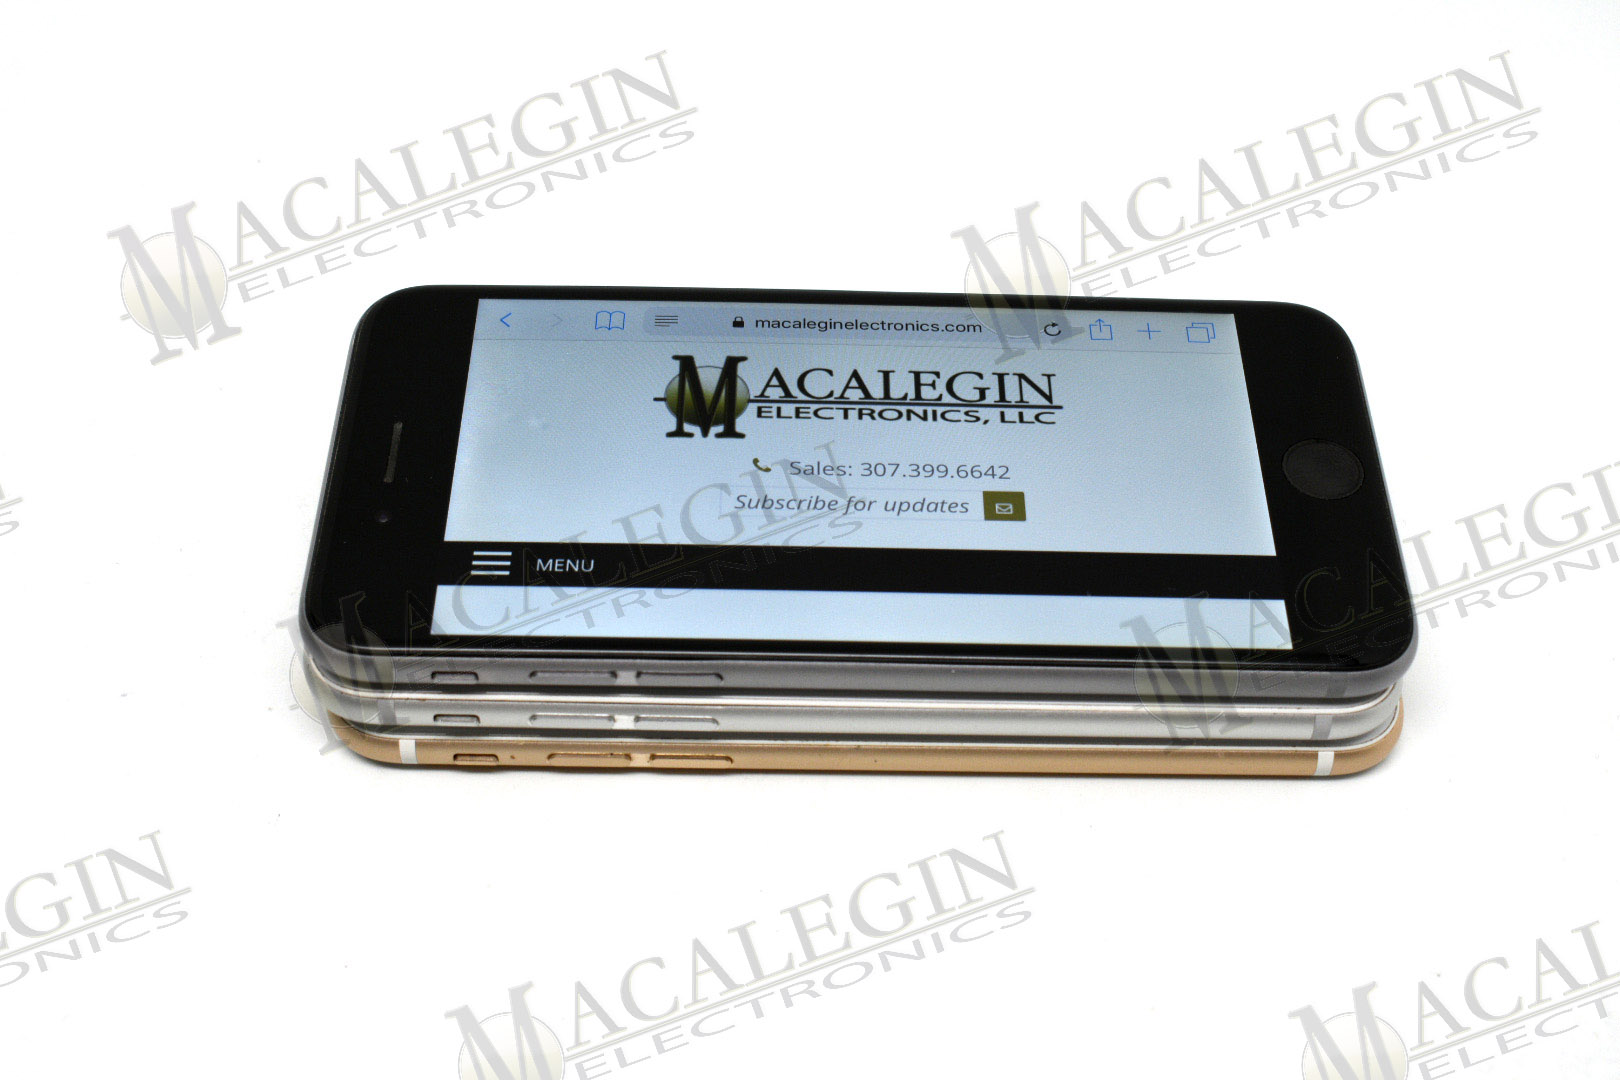 Used APPLE A1549 IPHONE 6 128GB UNLOCKED in PFL condition for sale from Macalegin Electronics at $120 a piece.